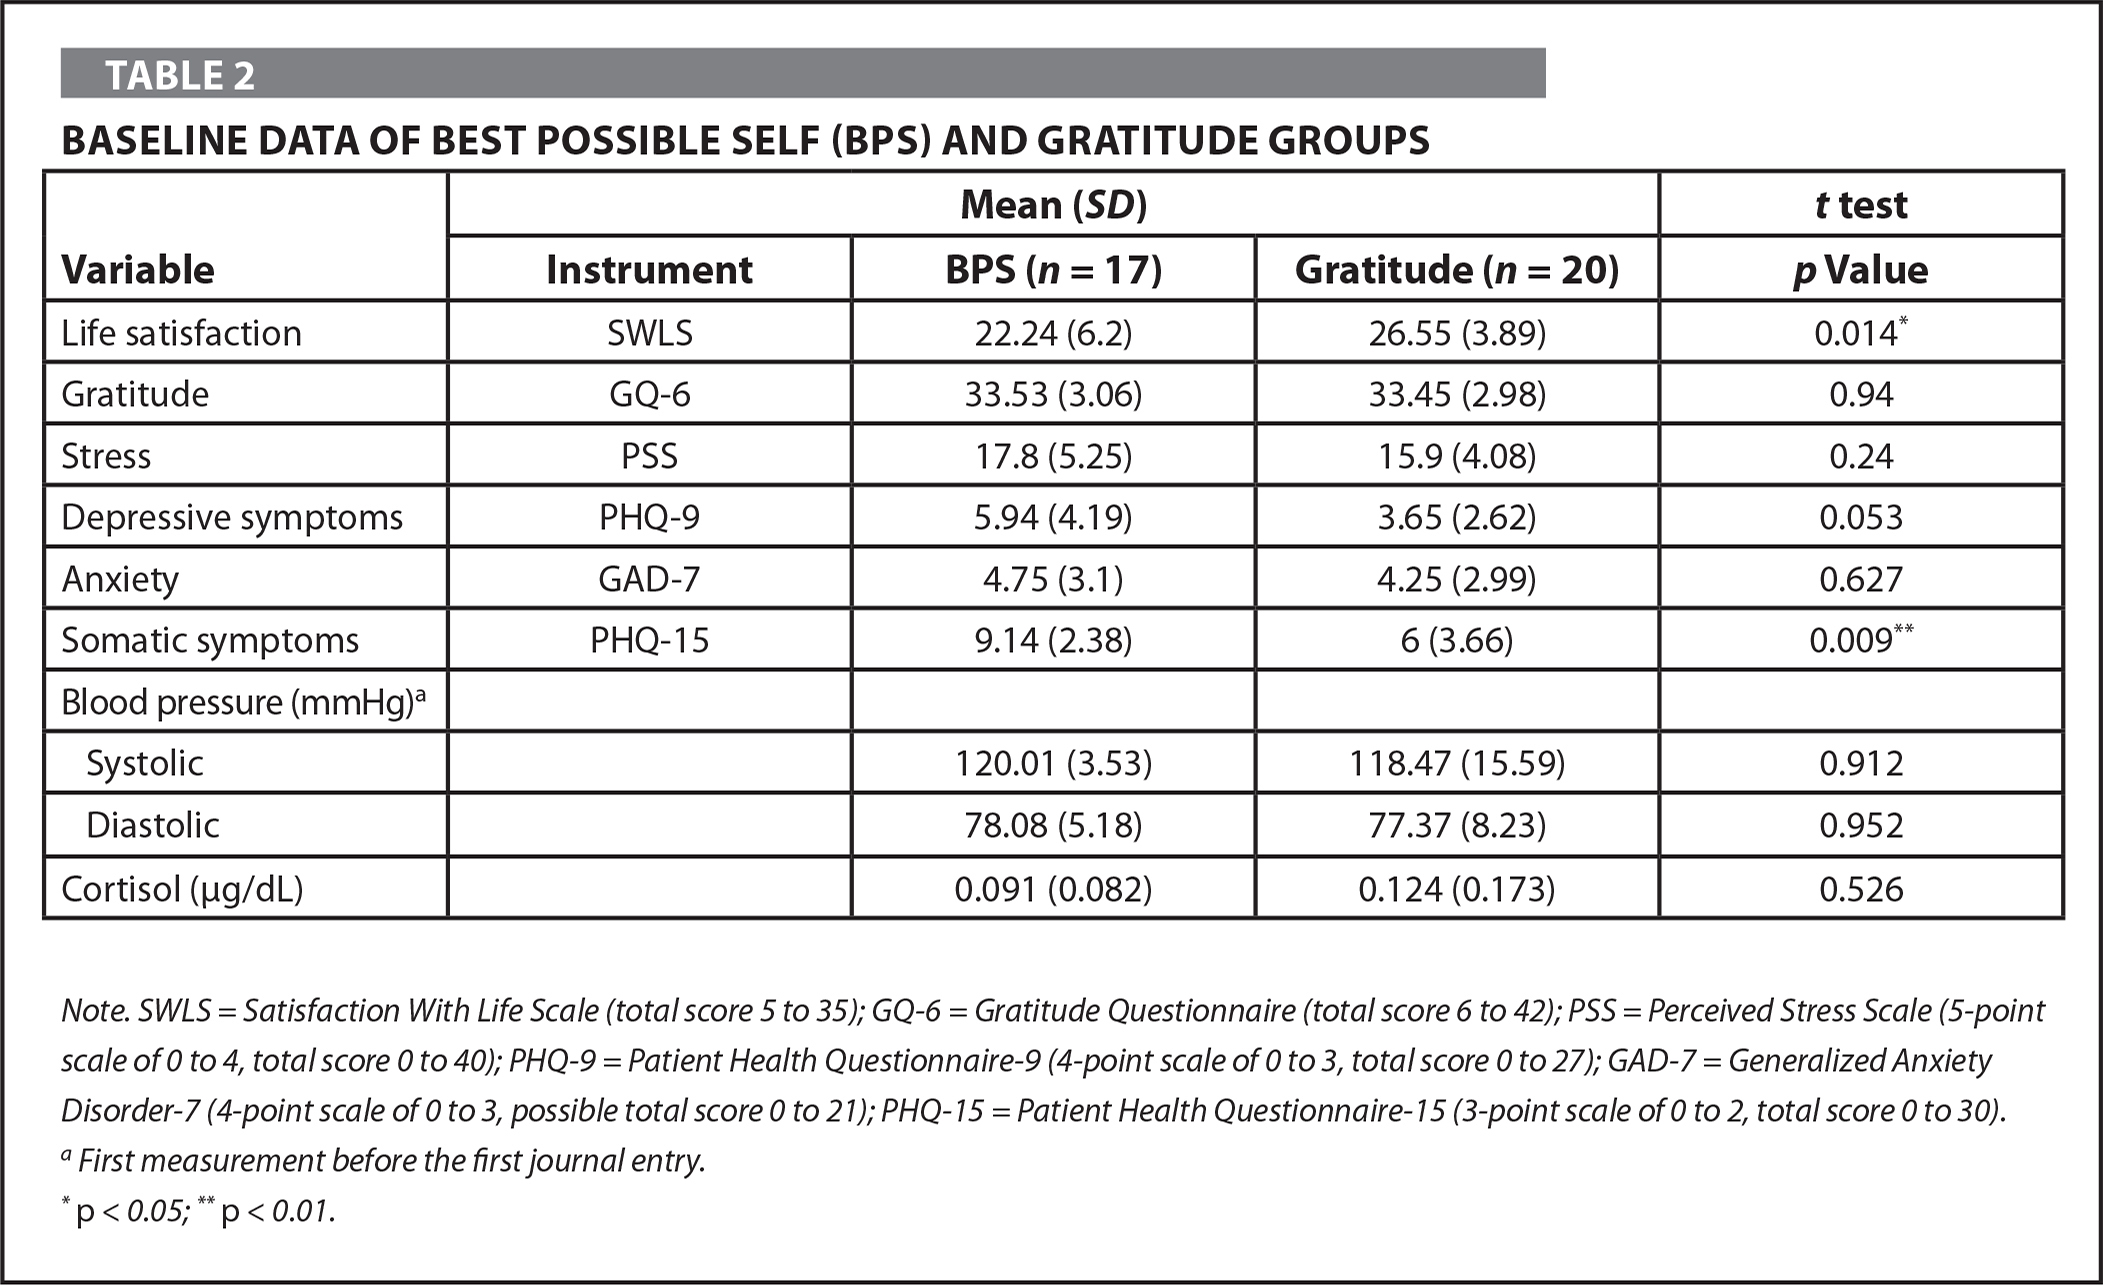 Baseline Data of Best Possible Self (BPS) and Gratitude Groups